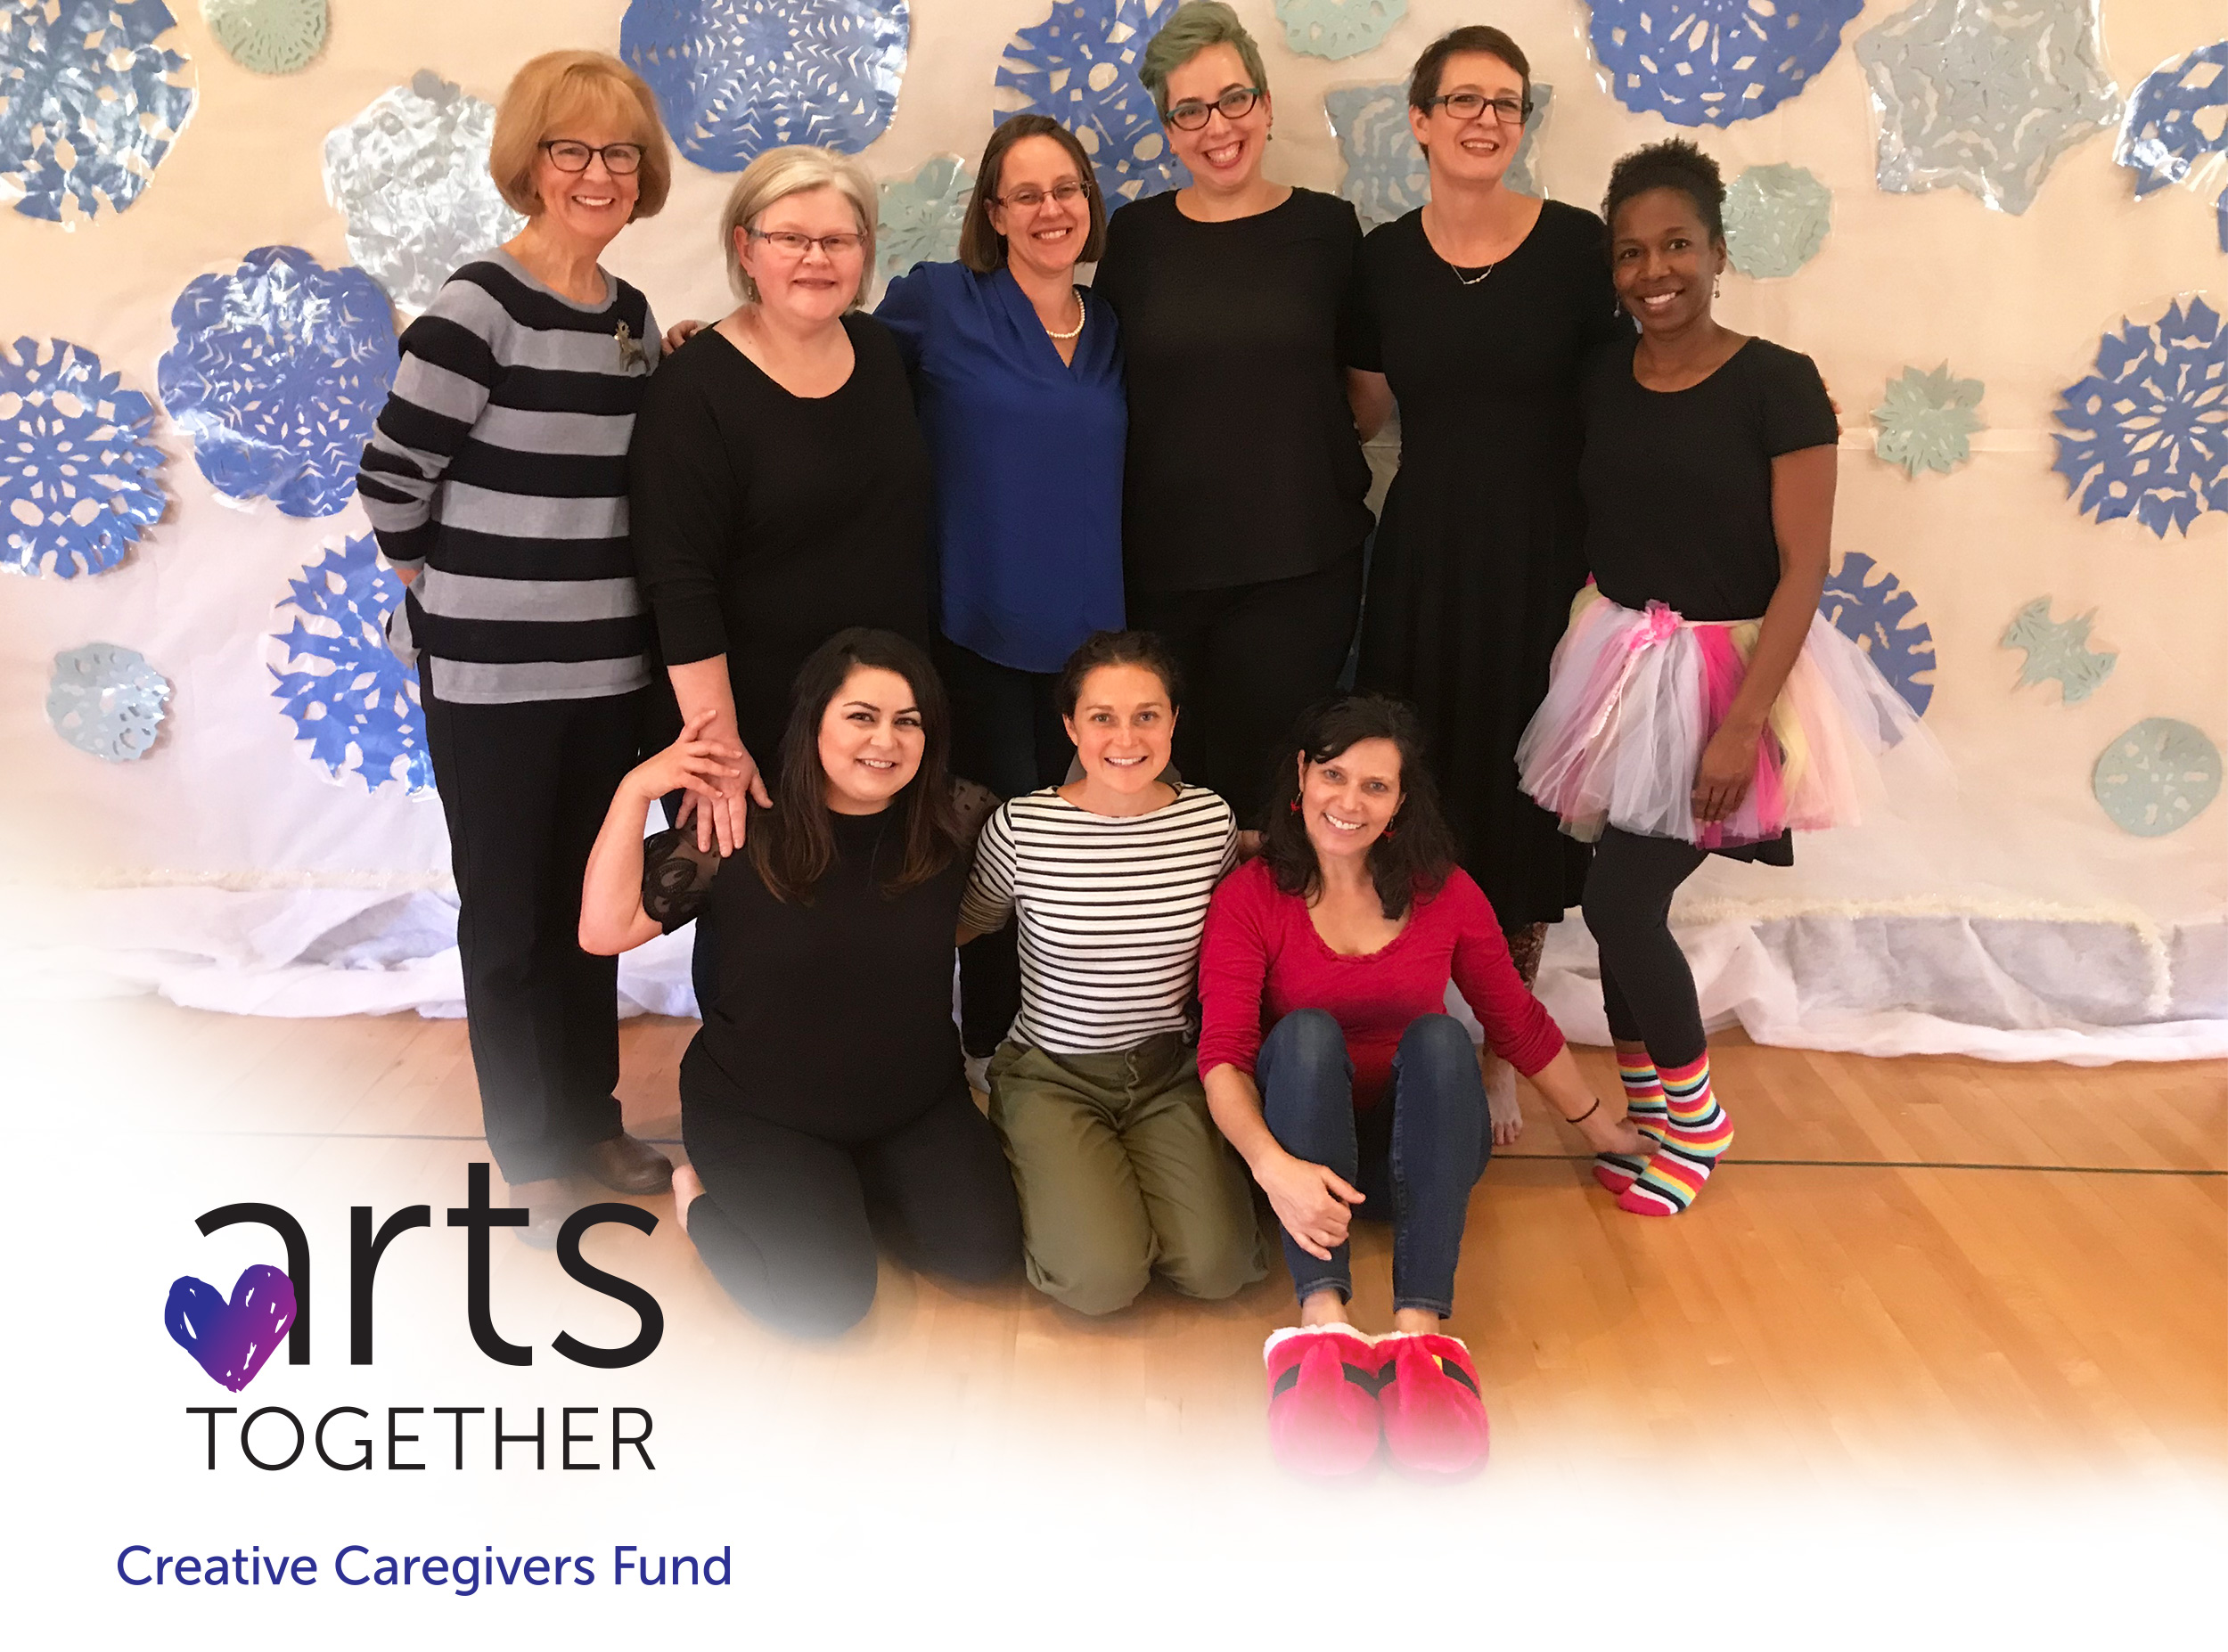 Arts Together's Preschool faculty members in a group shot, smiling. The Creative Caregivers Fund logo that features a purple heart is overlaid in the bottom left corner.